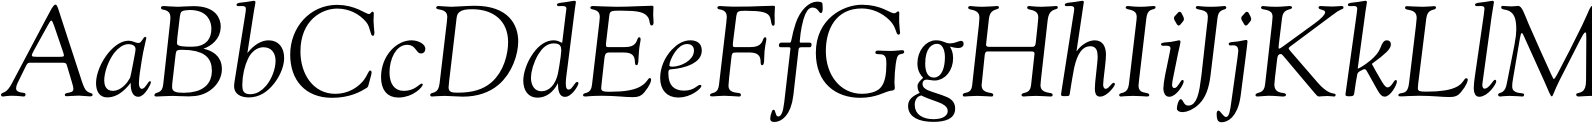 Goudy Old Style DT Italic